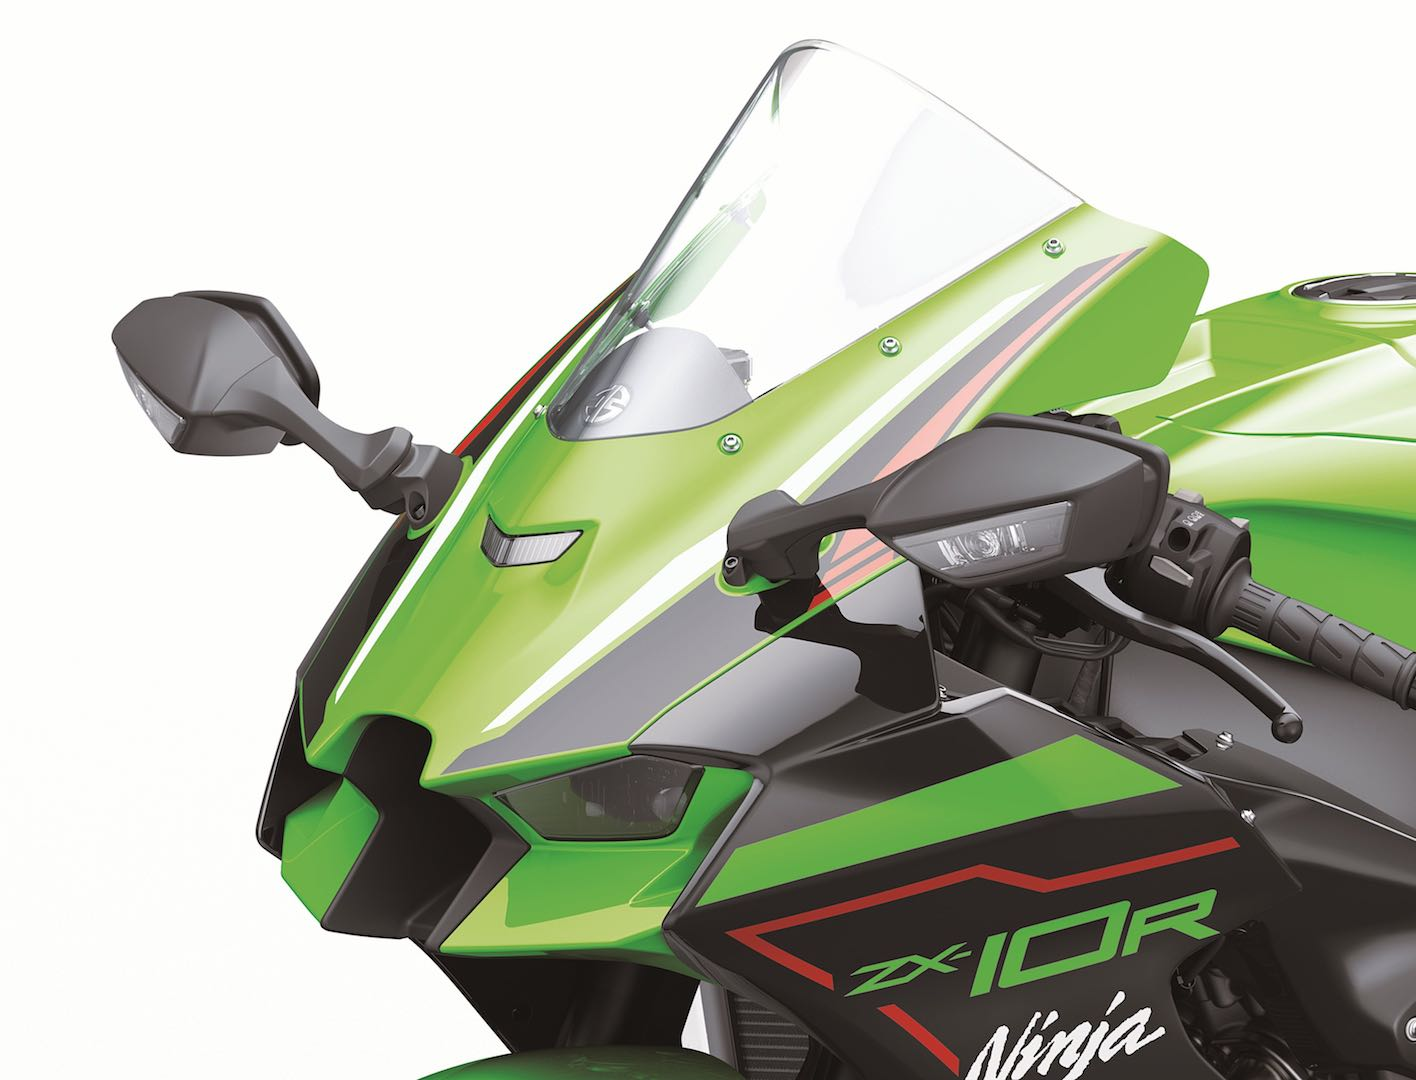 2021 ZX-10R revised cowling